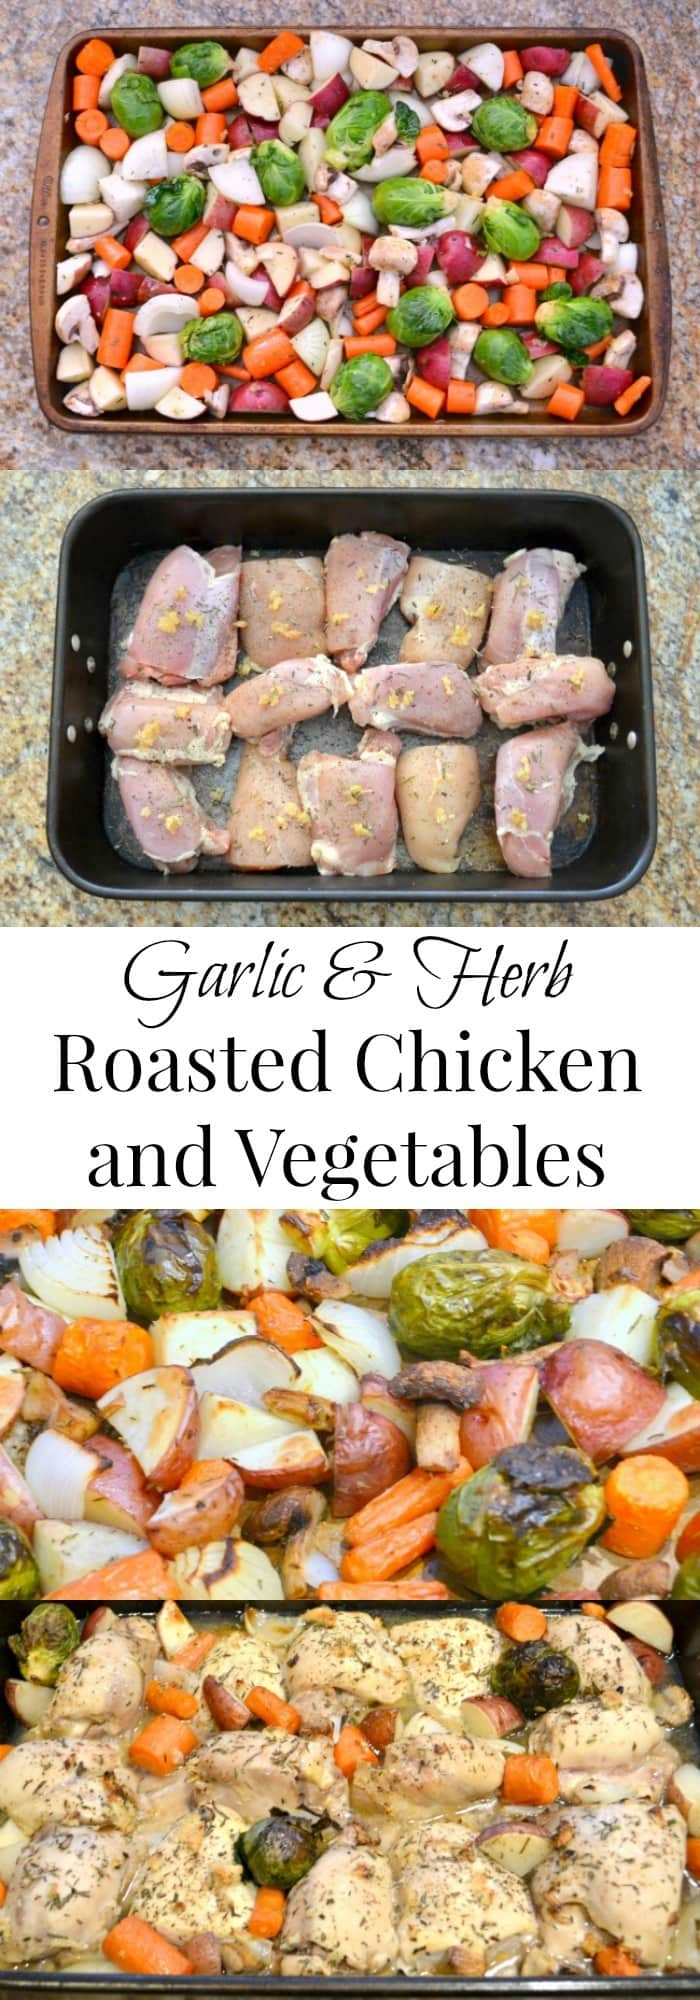 Garlic & Herb Roasted Chicken and Vegetables